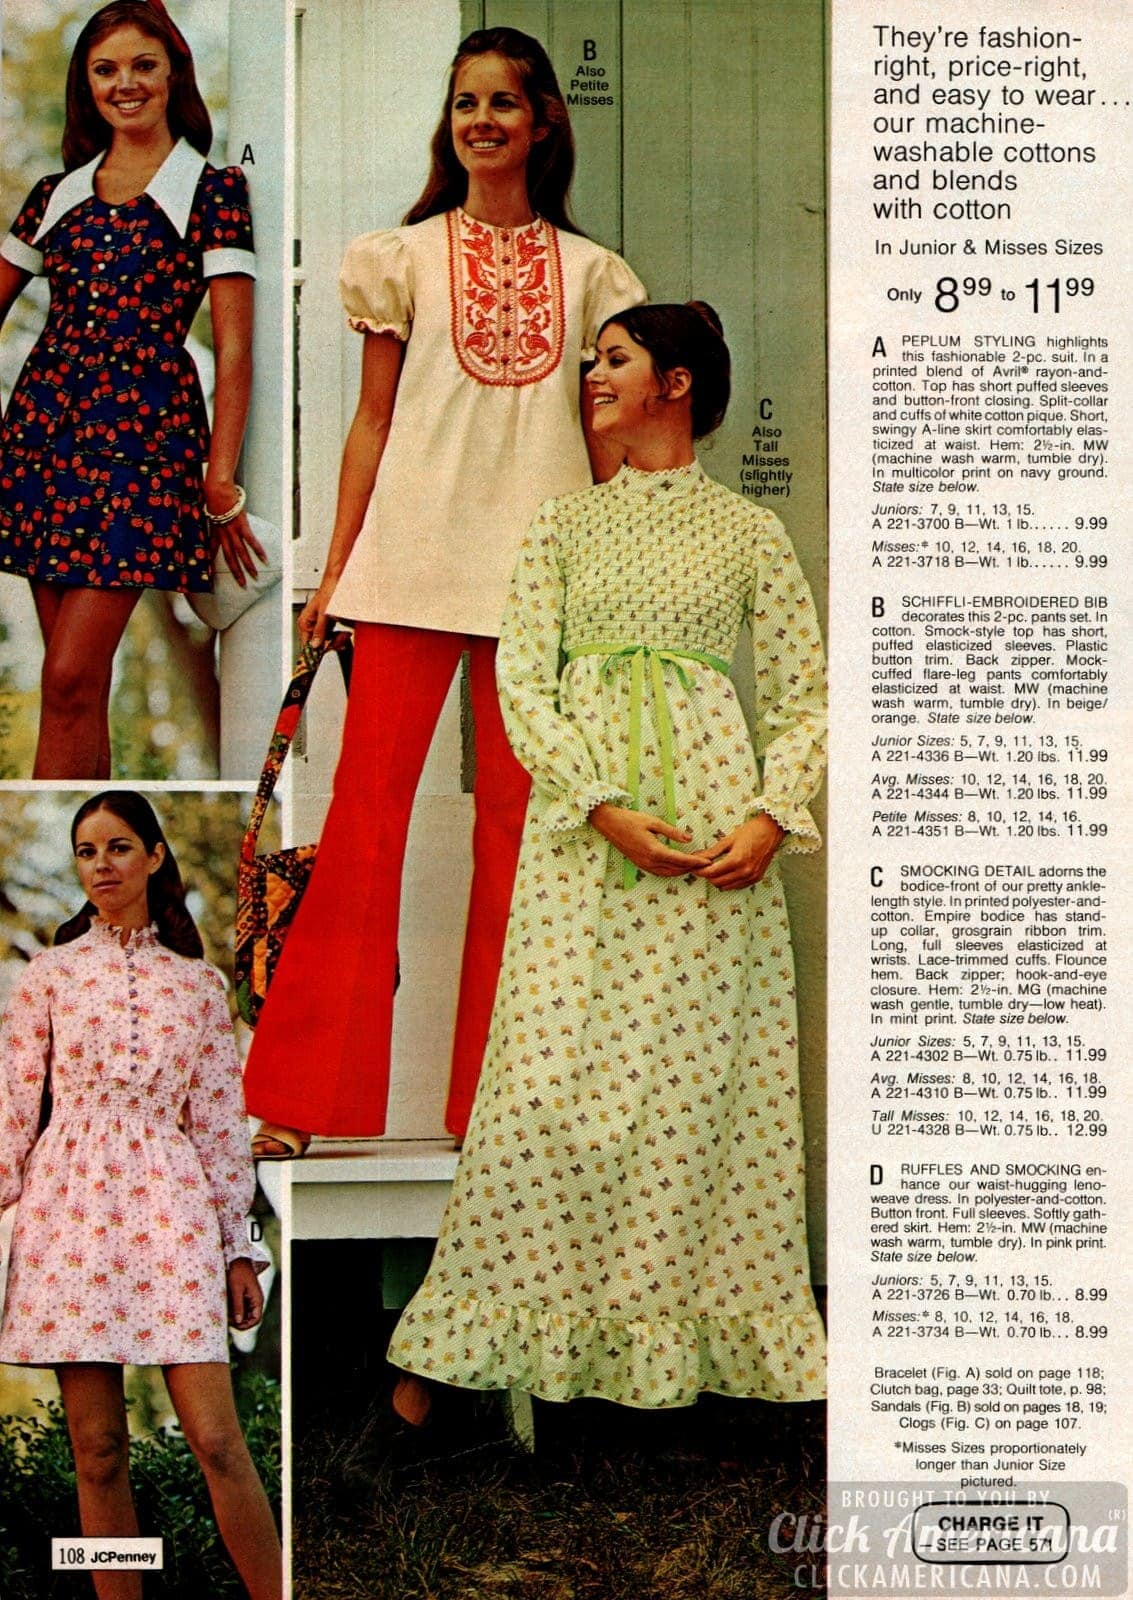 Peplum styled suit, schiffli-embroidered bib on pants set, ankle-length dress plus ruffled and smocked dress